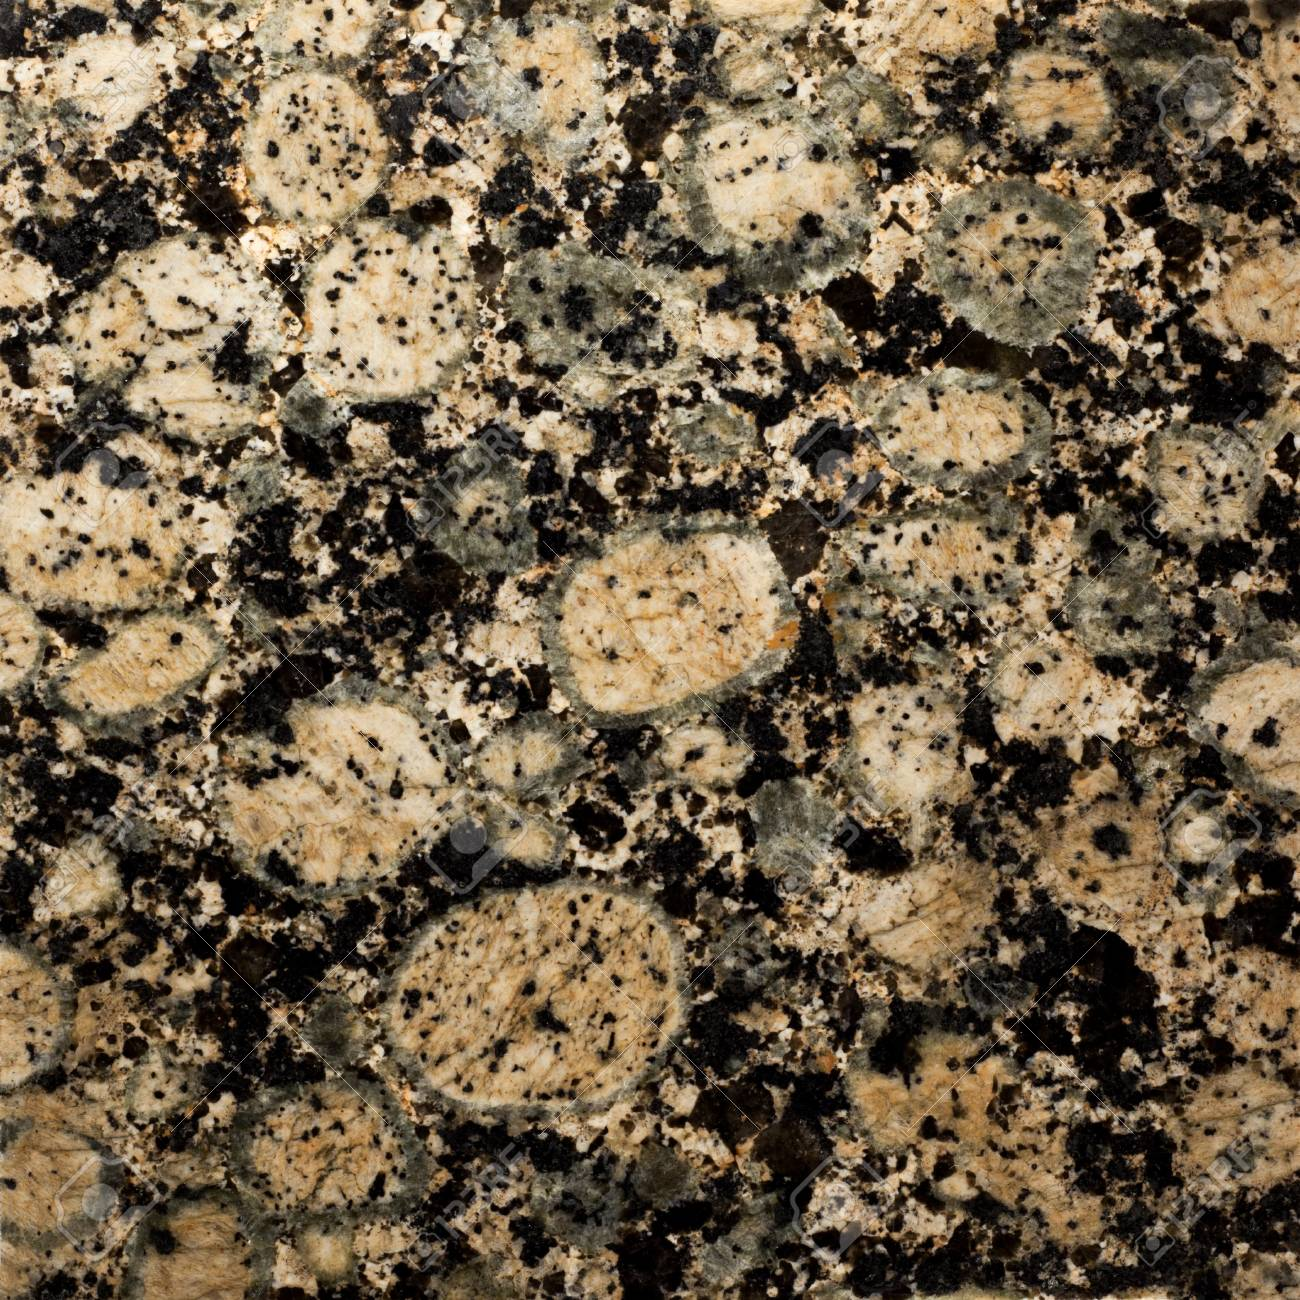 Texture Of Natural Stone Granite Baltic Brown Variety Stock Photo Picture And Royalty Free Image Image 77627514